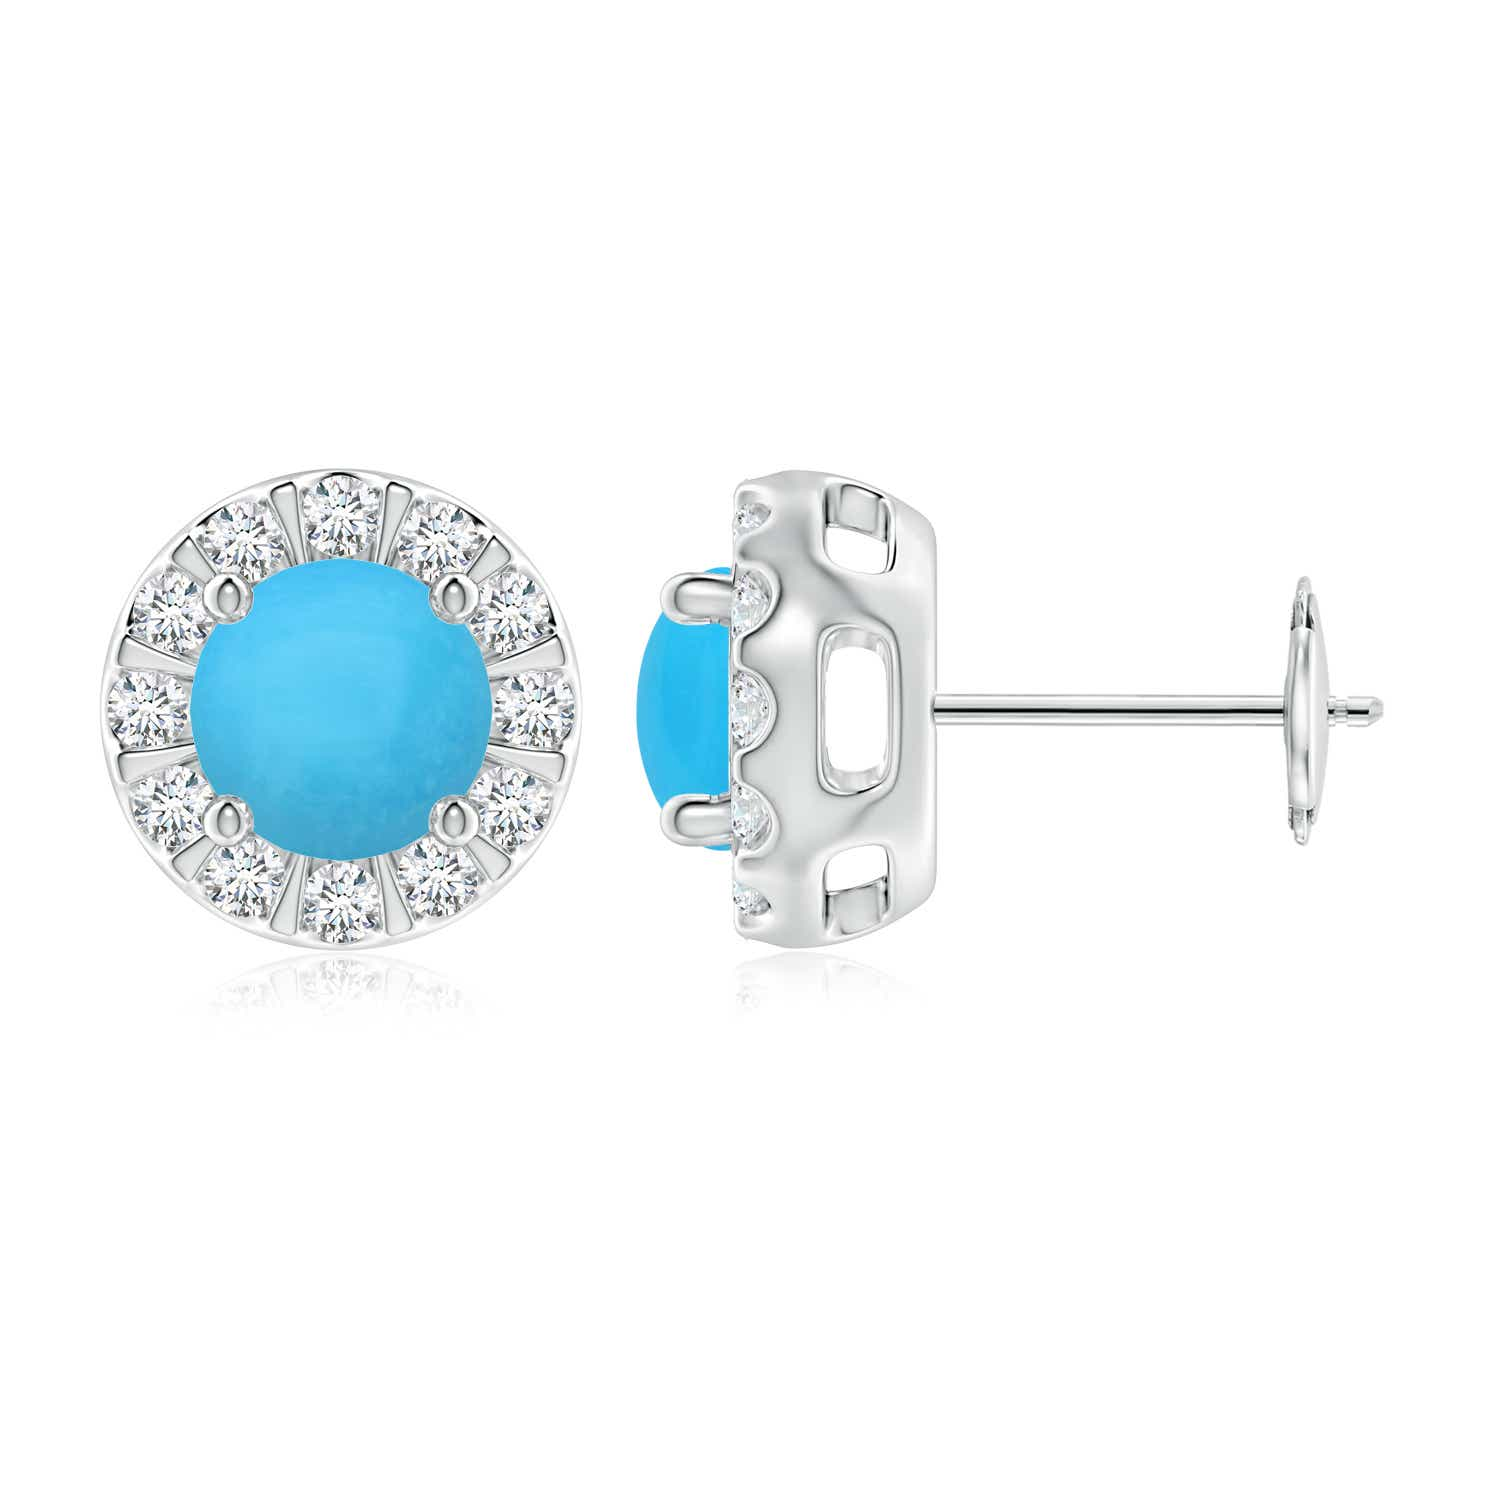 Turquoise Stud Earrings With Bar Set Diamond Halo